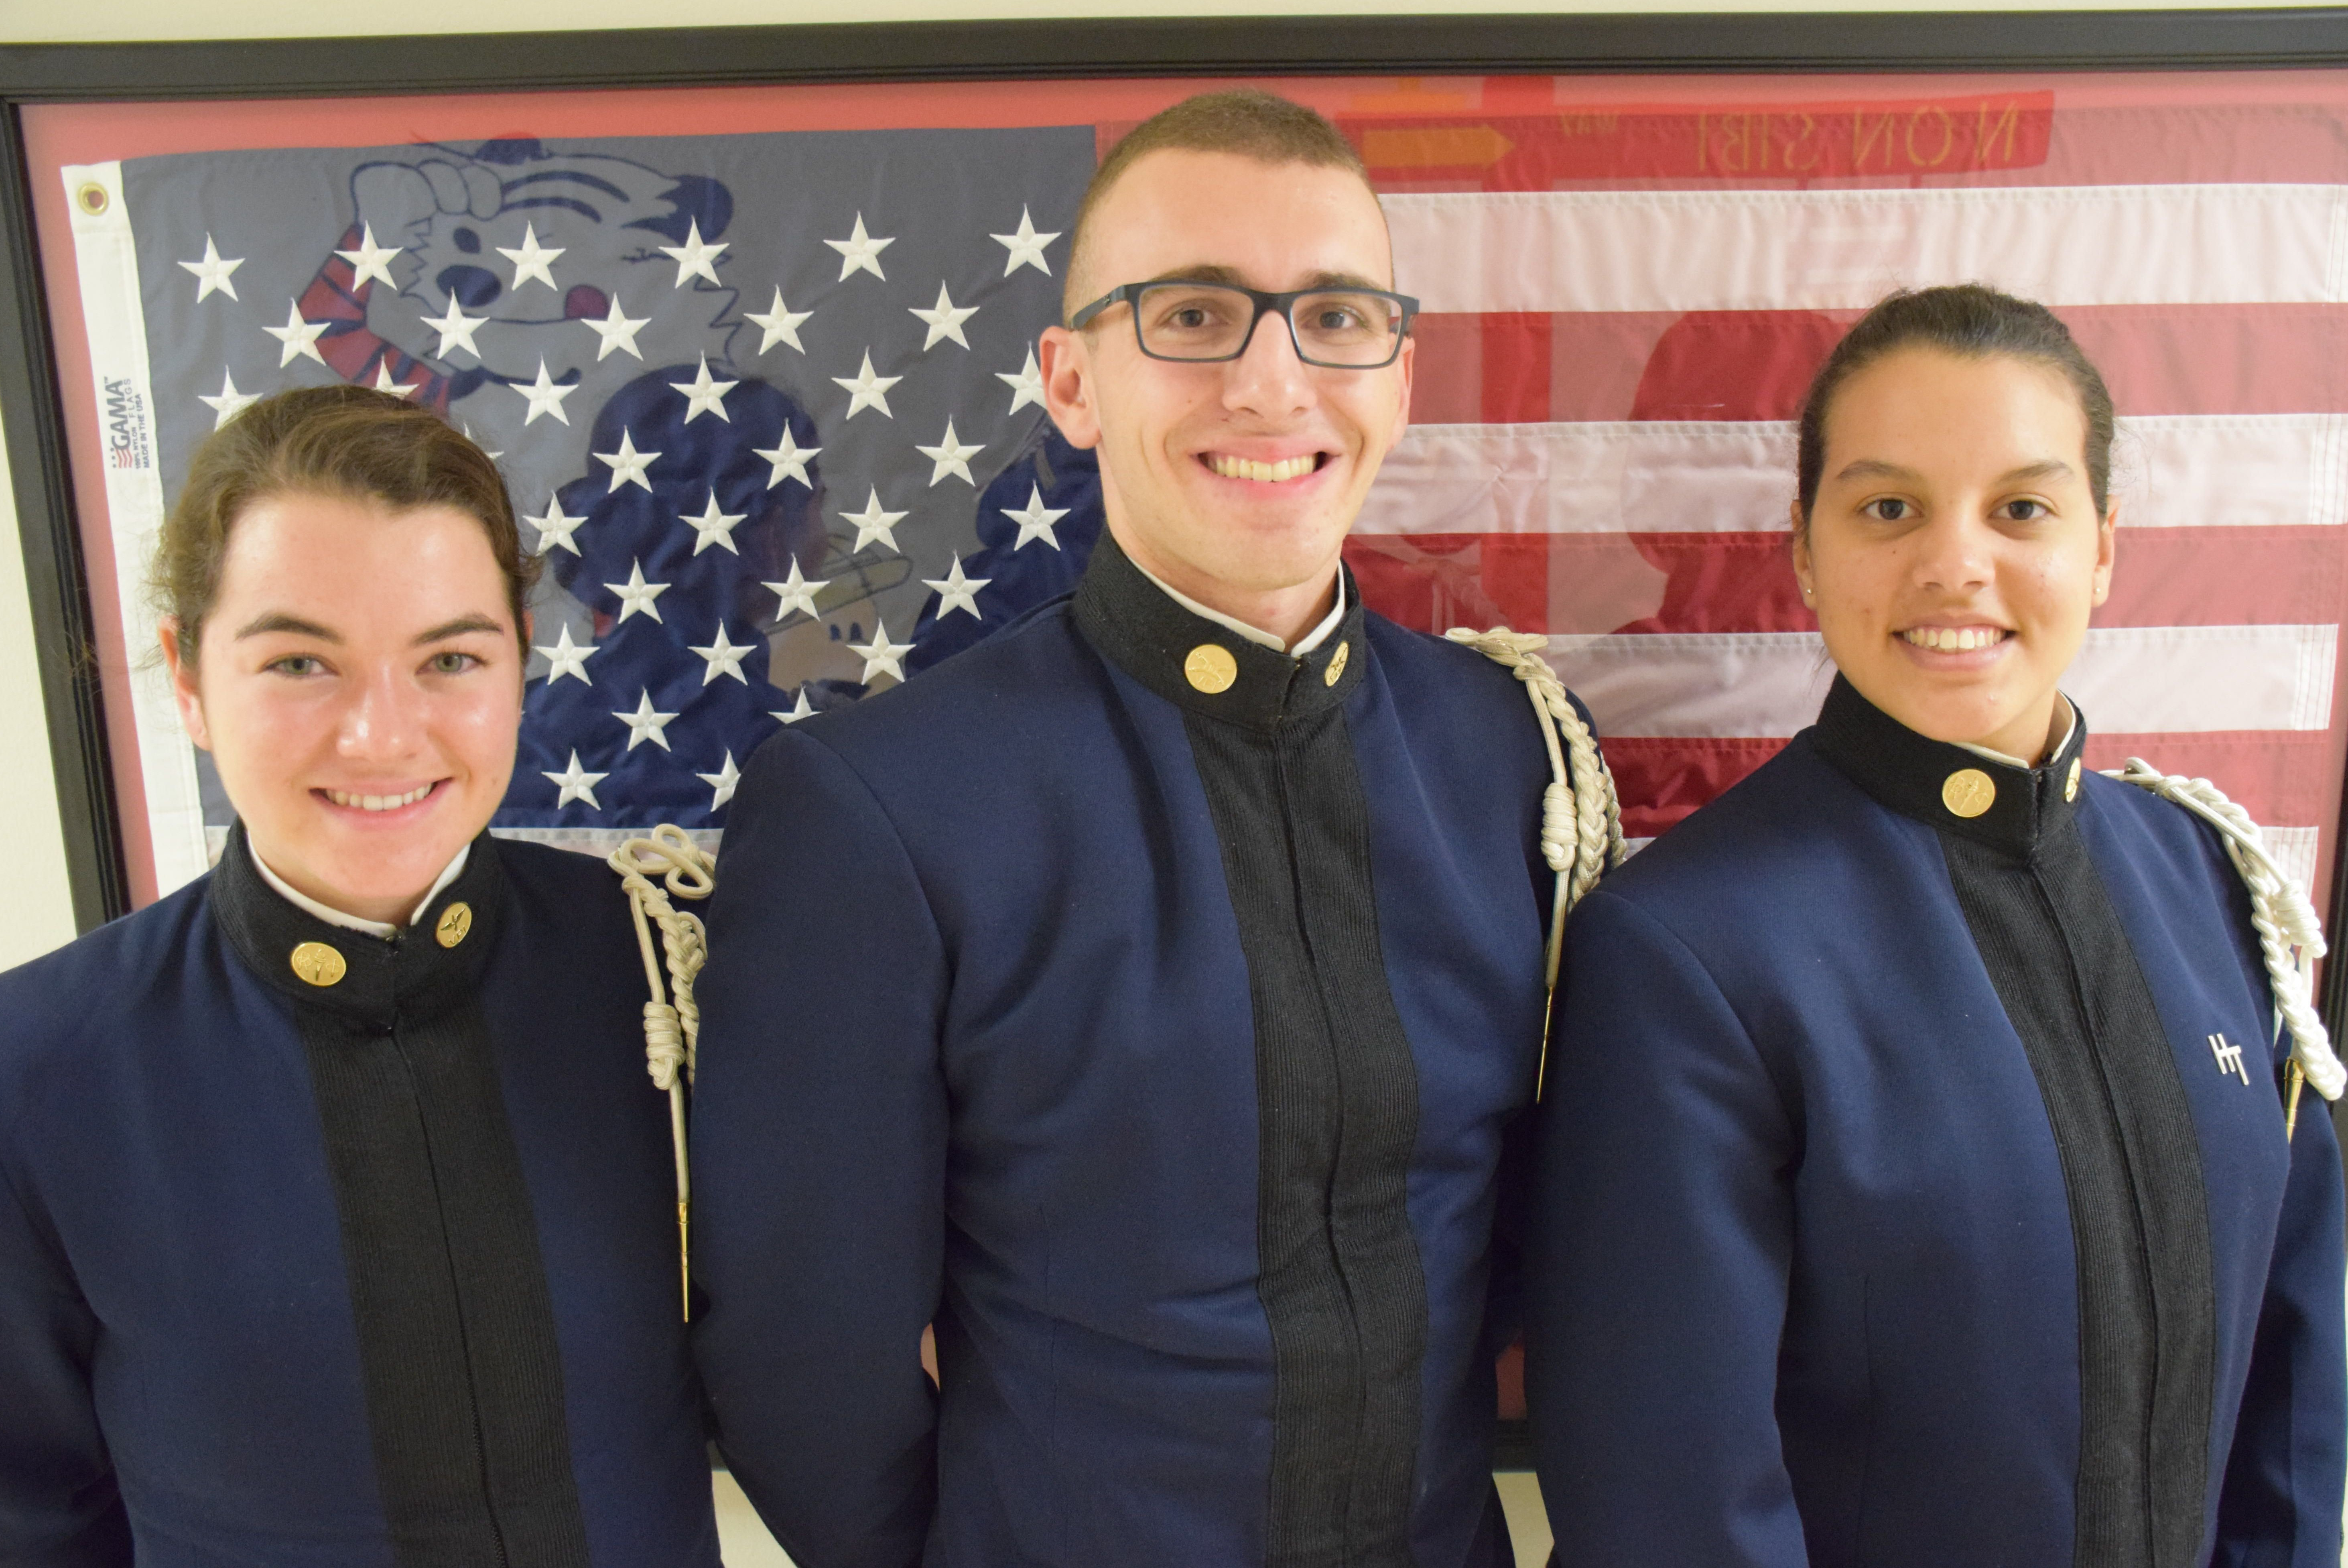 From left to right are Cadets Colleen Pramenko, Daniel Rhoades, and Samantha Velazquez-Martinez.